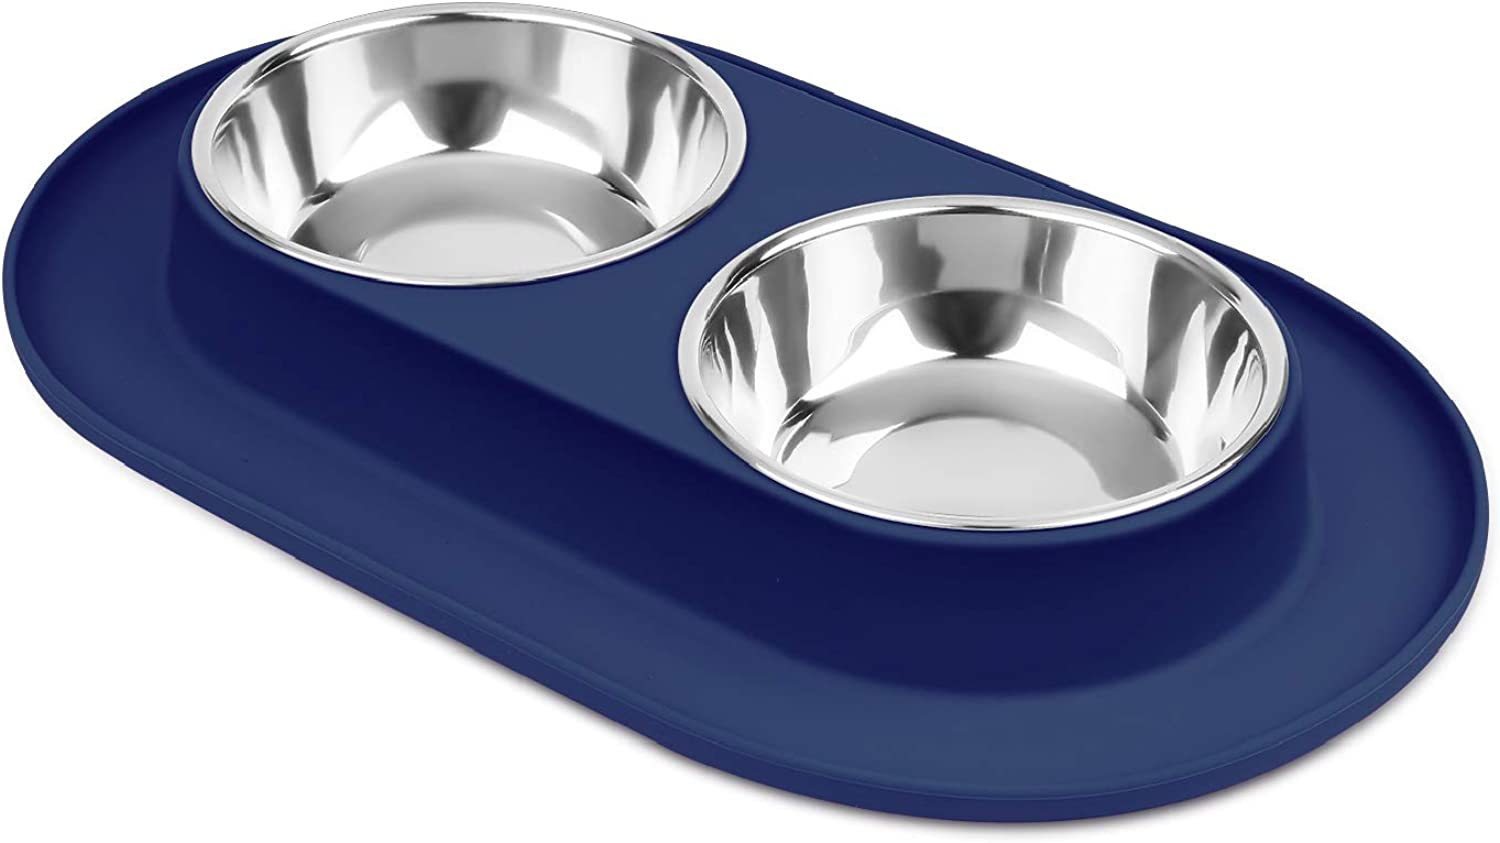 Flexzion Double Dog Bowl Feeding Station, Skid Proof Silicone Base with Spill Proof Raised Lip & Two 12oz Stainless Steel Bowls for Food and Water, Ideal for Small to Medium Size Dogs Cats Pet, bluee